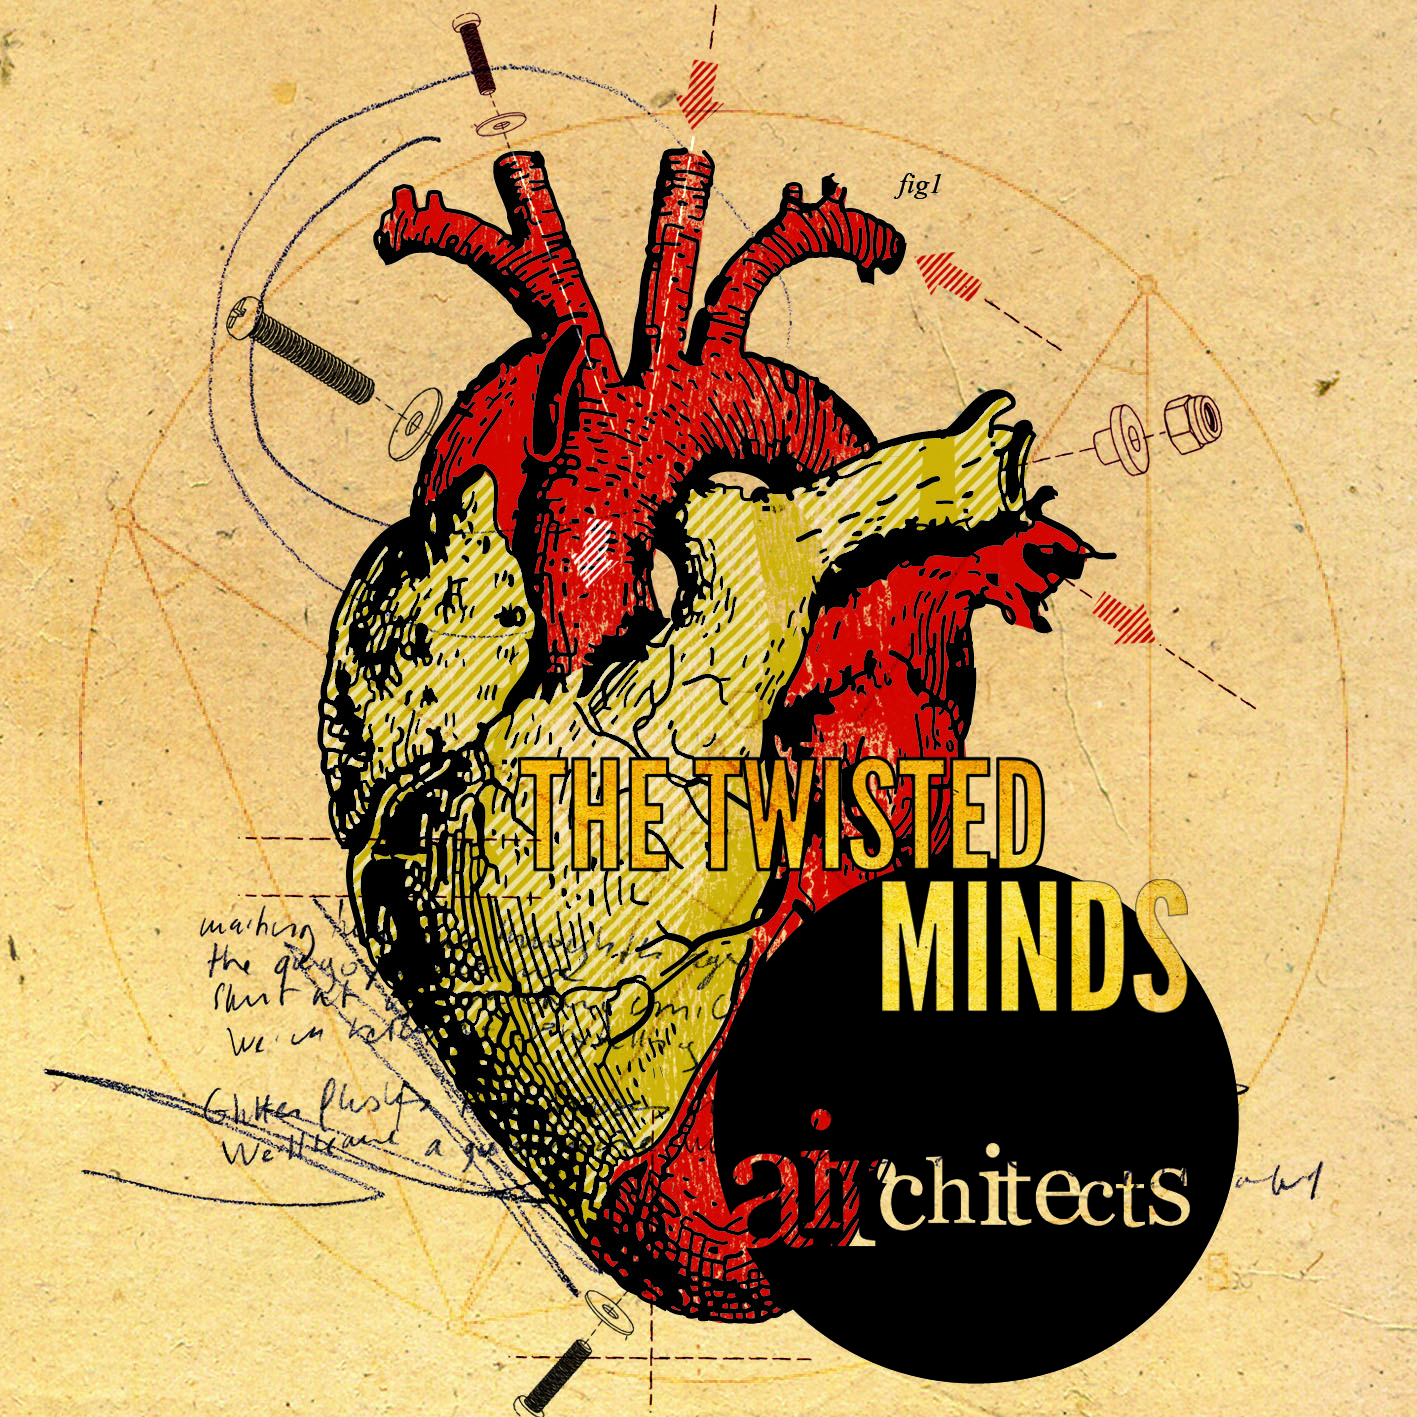 The Twisted Minds - airchitects